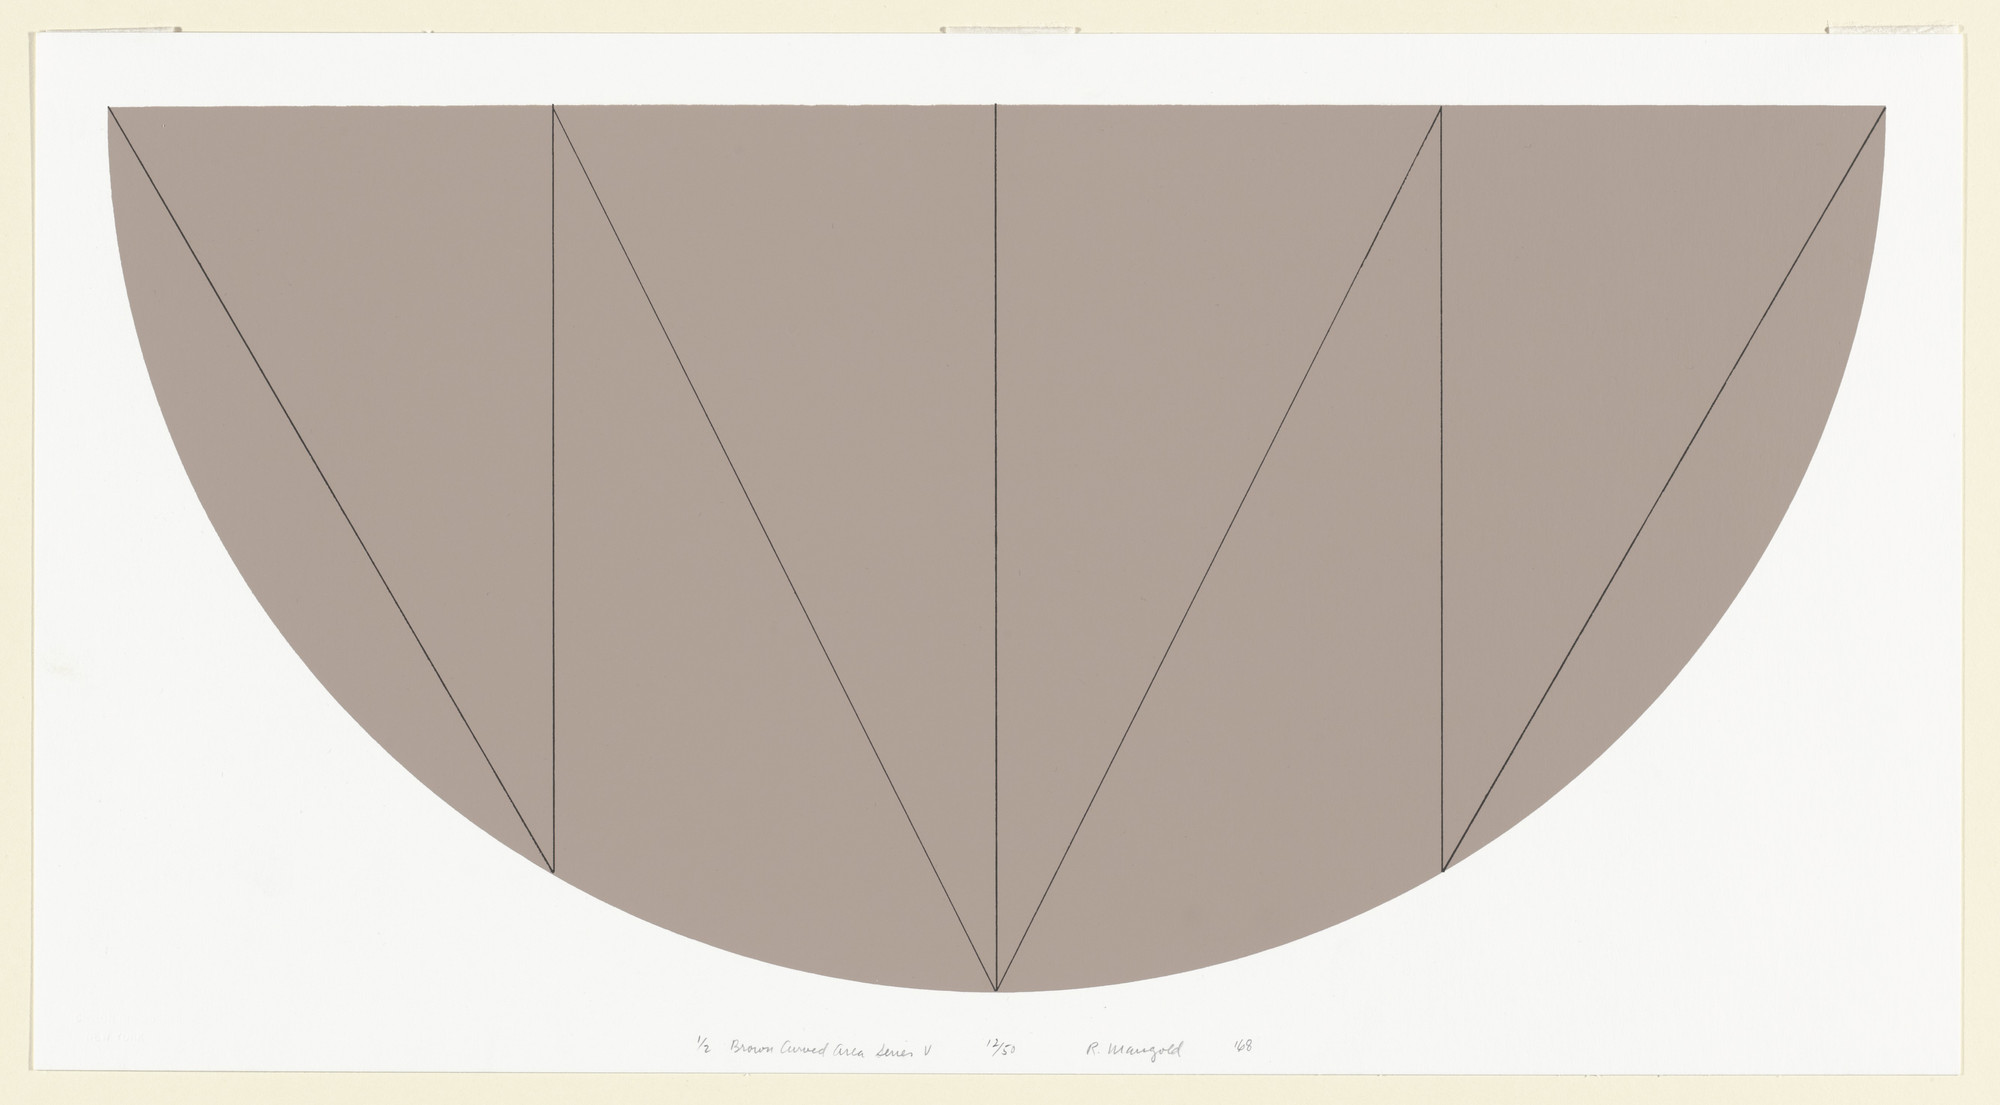 Robert Mangold. 1/2 Brown Curved Area Series V. 1968